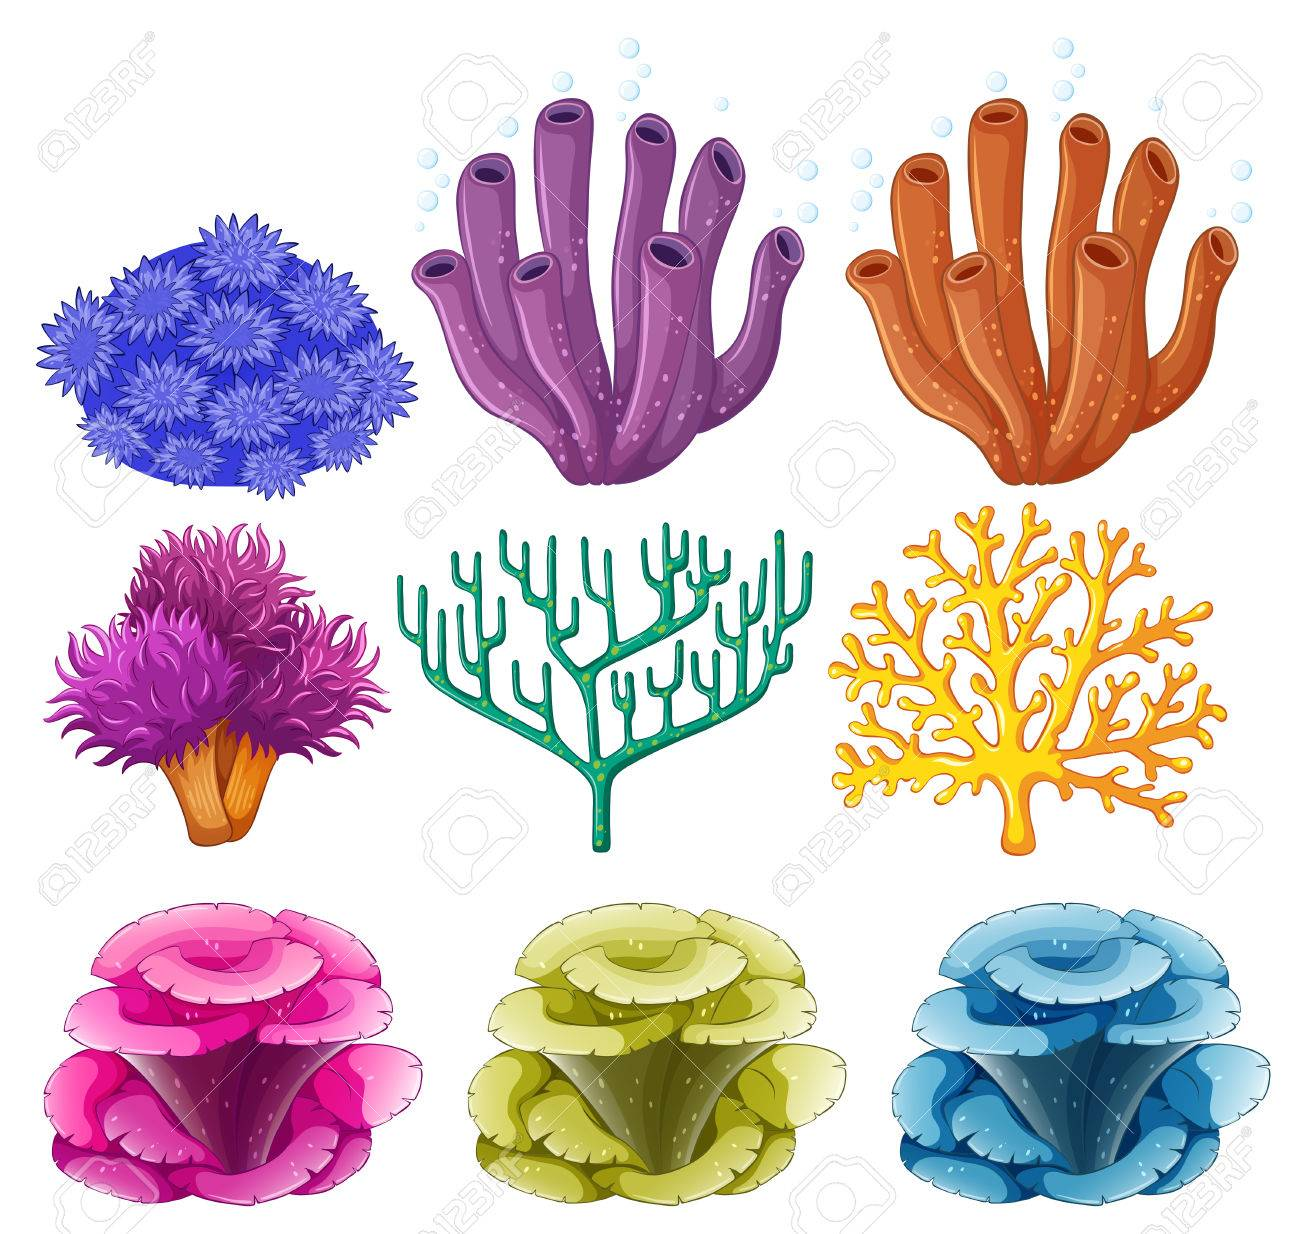 Different types of coral reef illustration royalty free cliparts different types of coral reef illustration stock vector 68435618 publicscrutiny Images